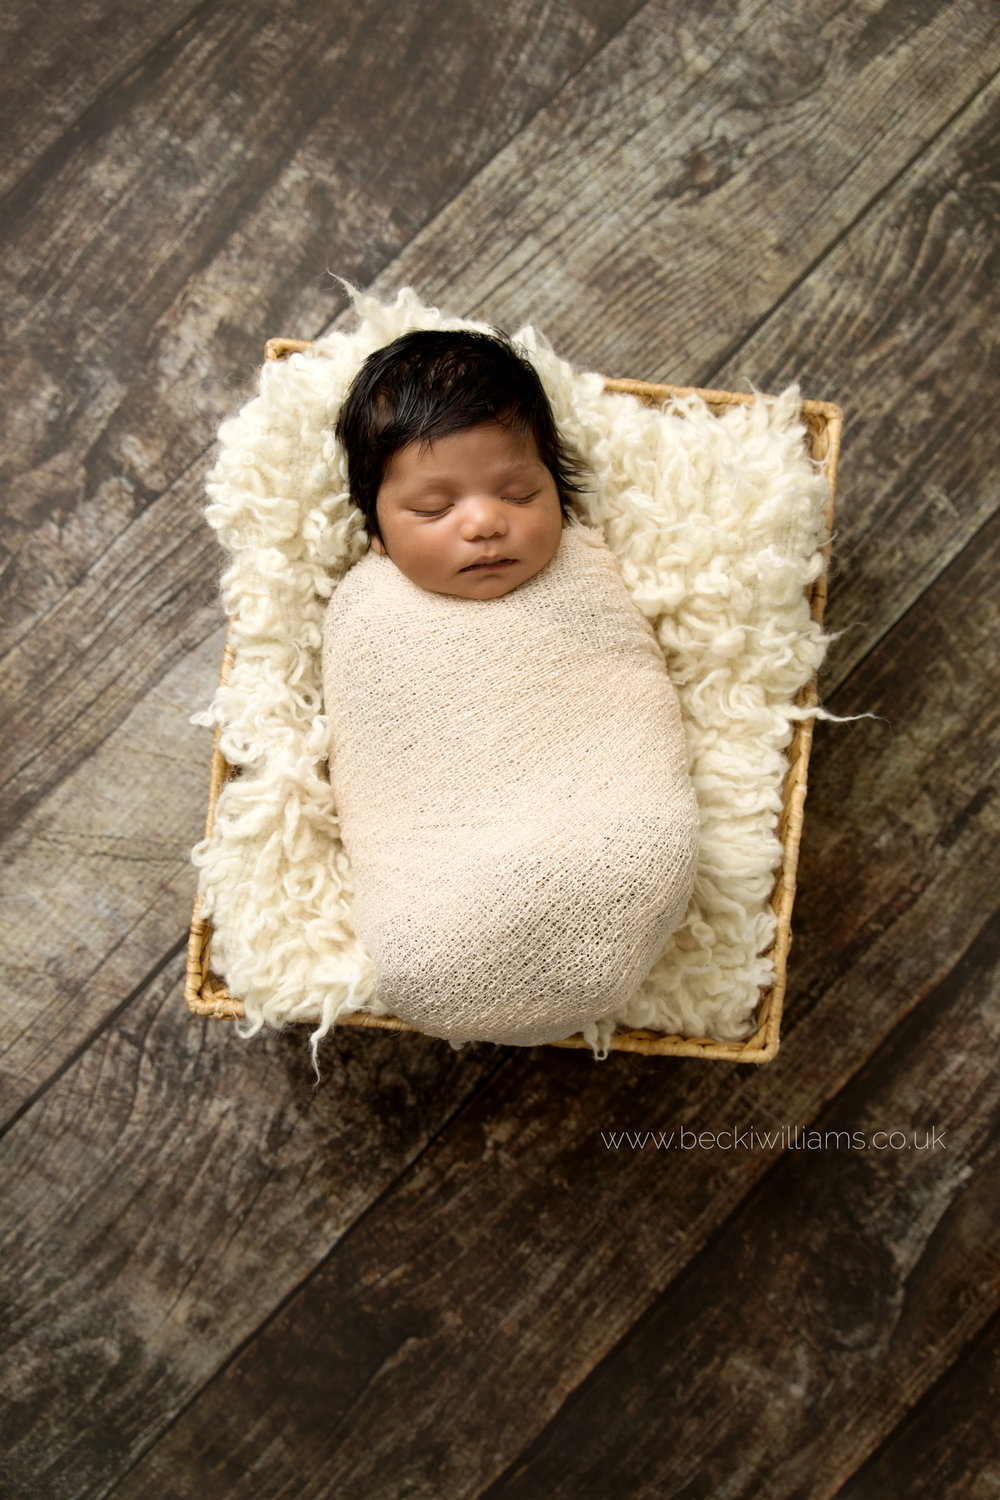 newborn baby girl wrapped in a cream wrap in a basket on a wooden floor